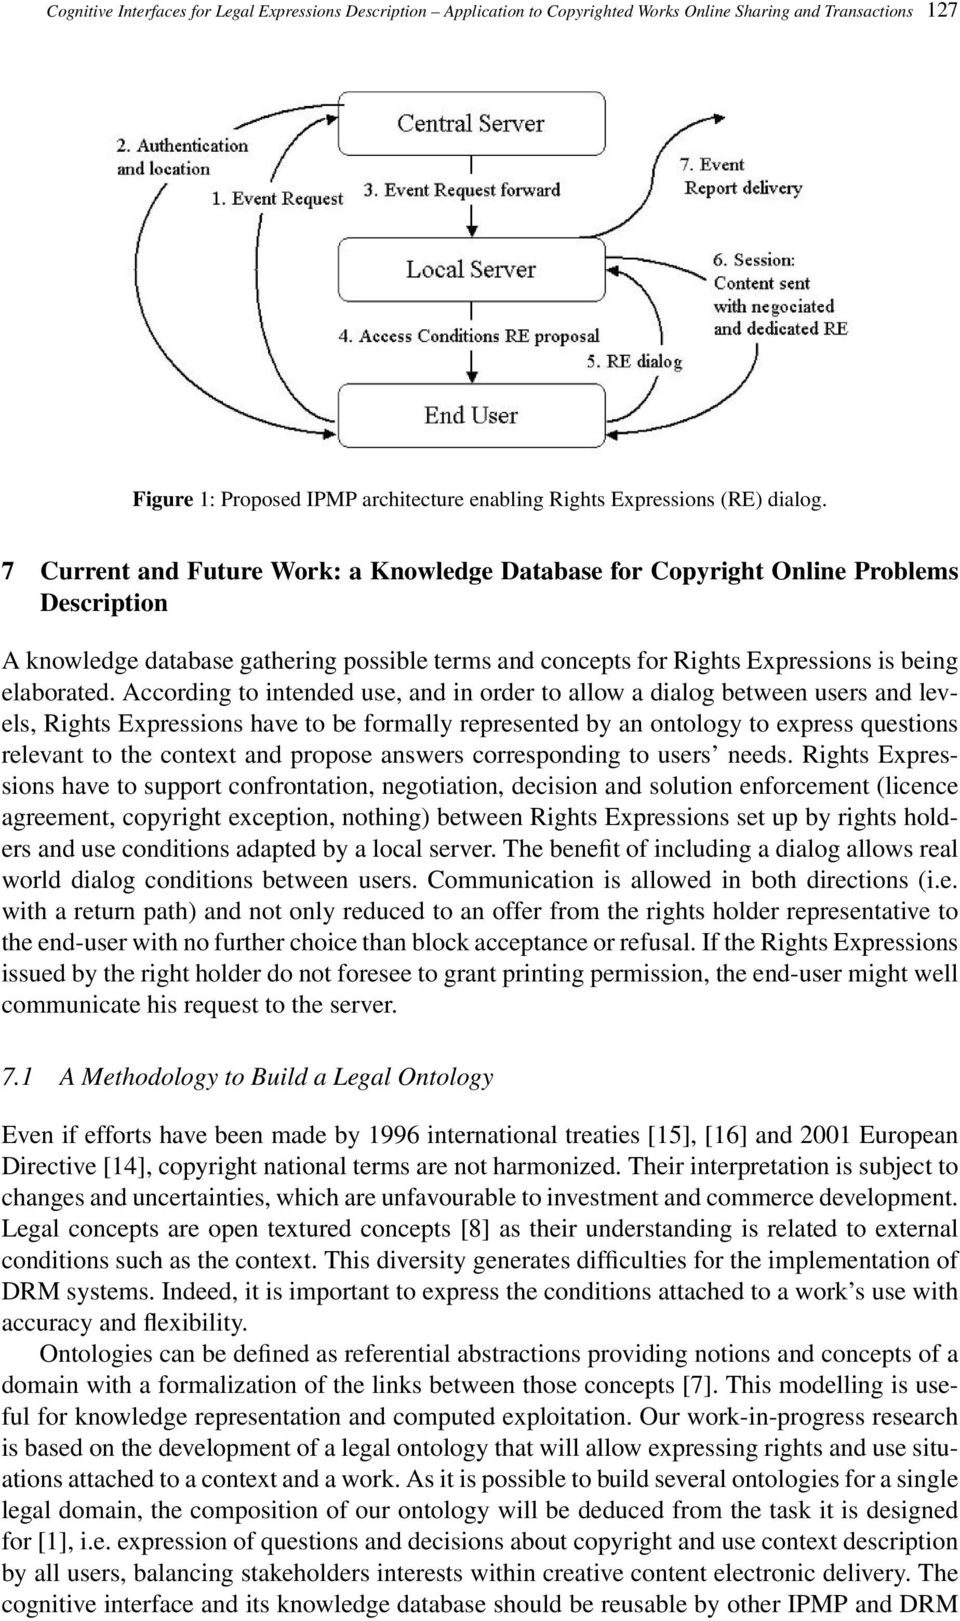 According to intended use, and in order to allow a dialog between users and levels, Rights Expressions have to be formally represented by an ontology to express questions relevant to the context and